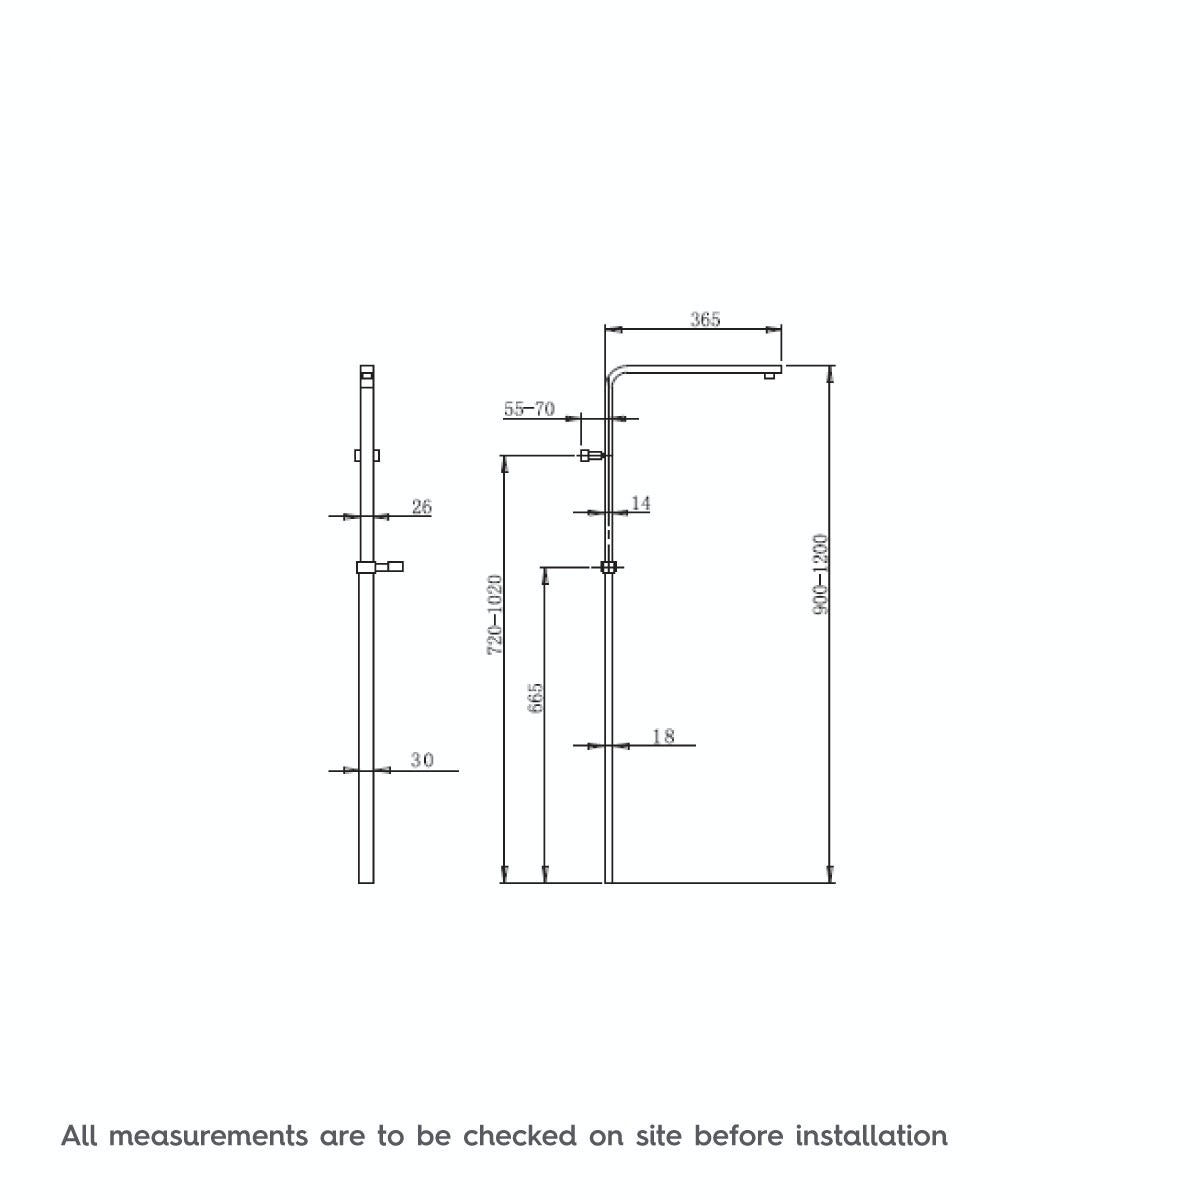 Dimensions for Orchard Tetra black thermostatic bar valve shower system